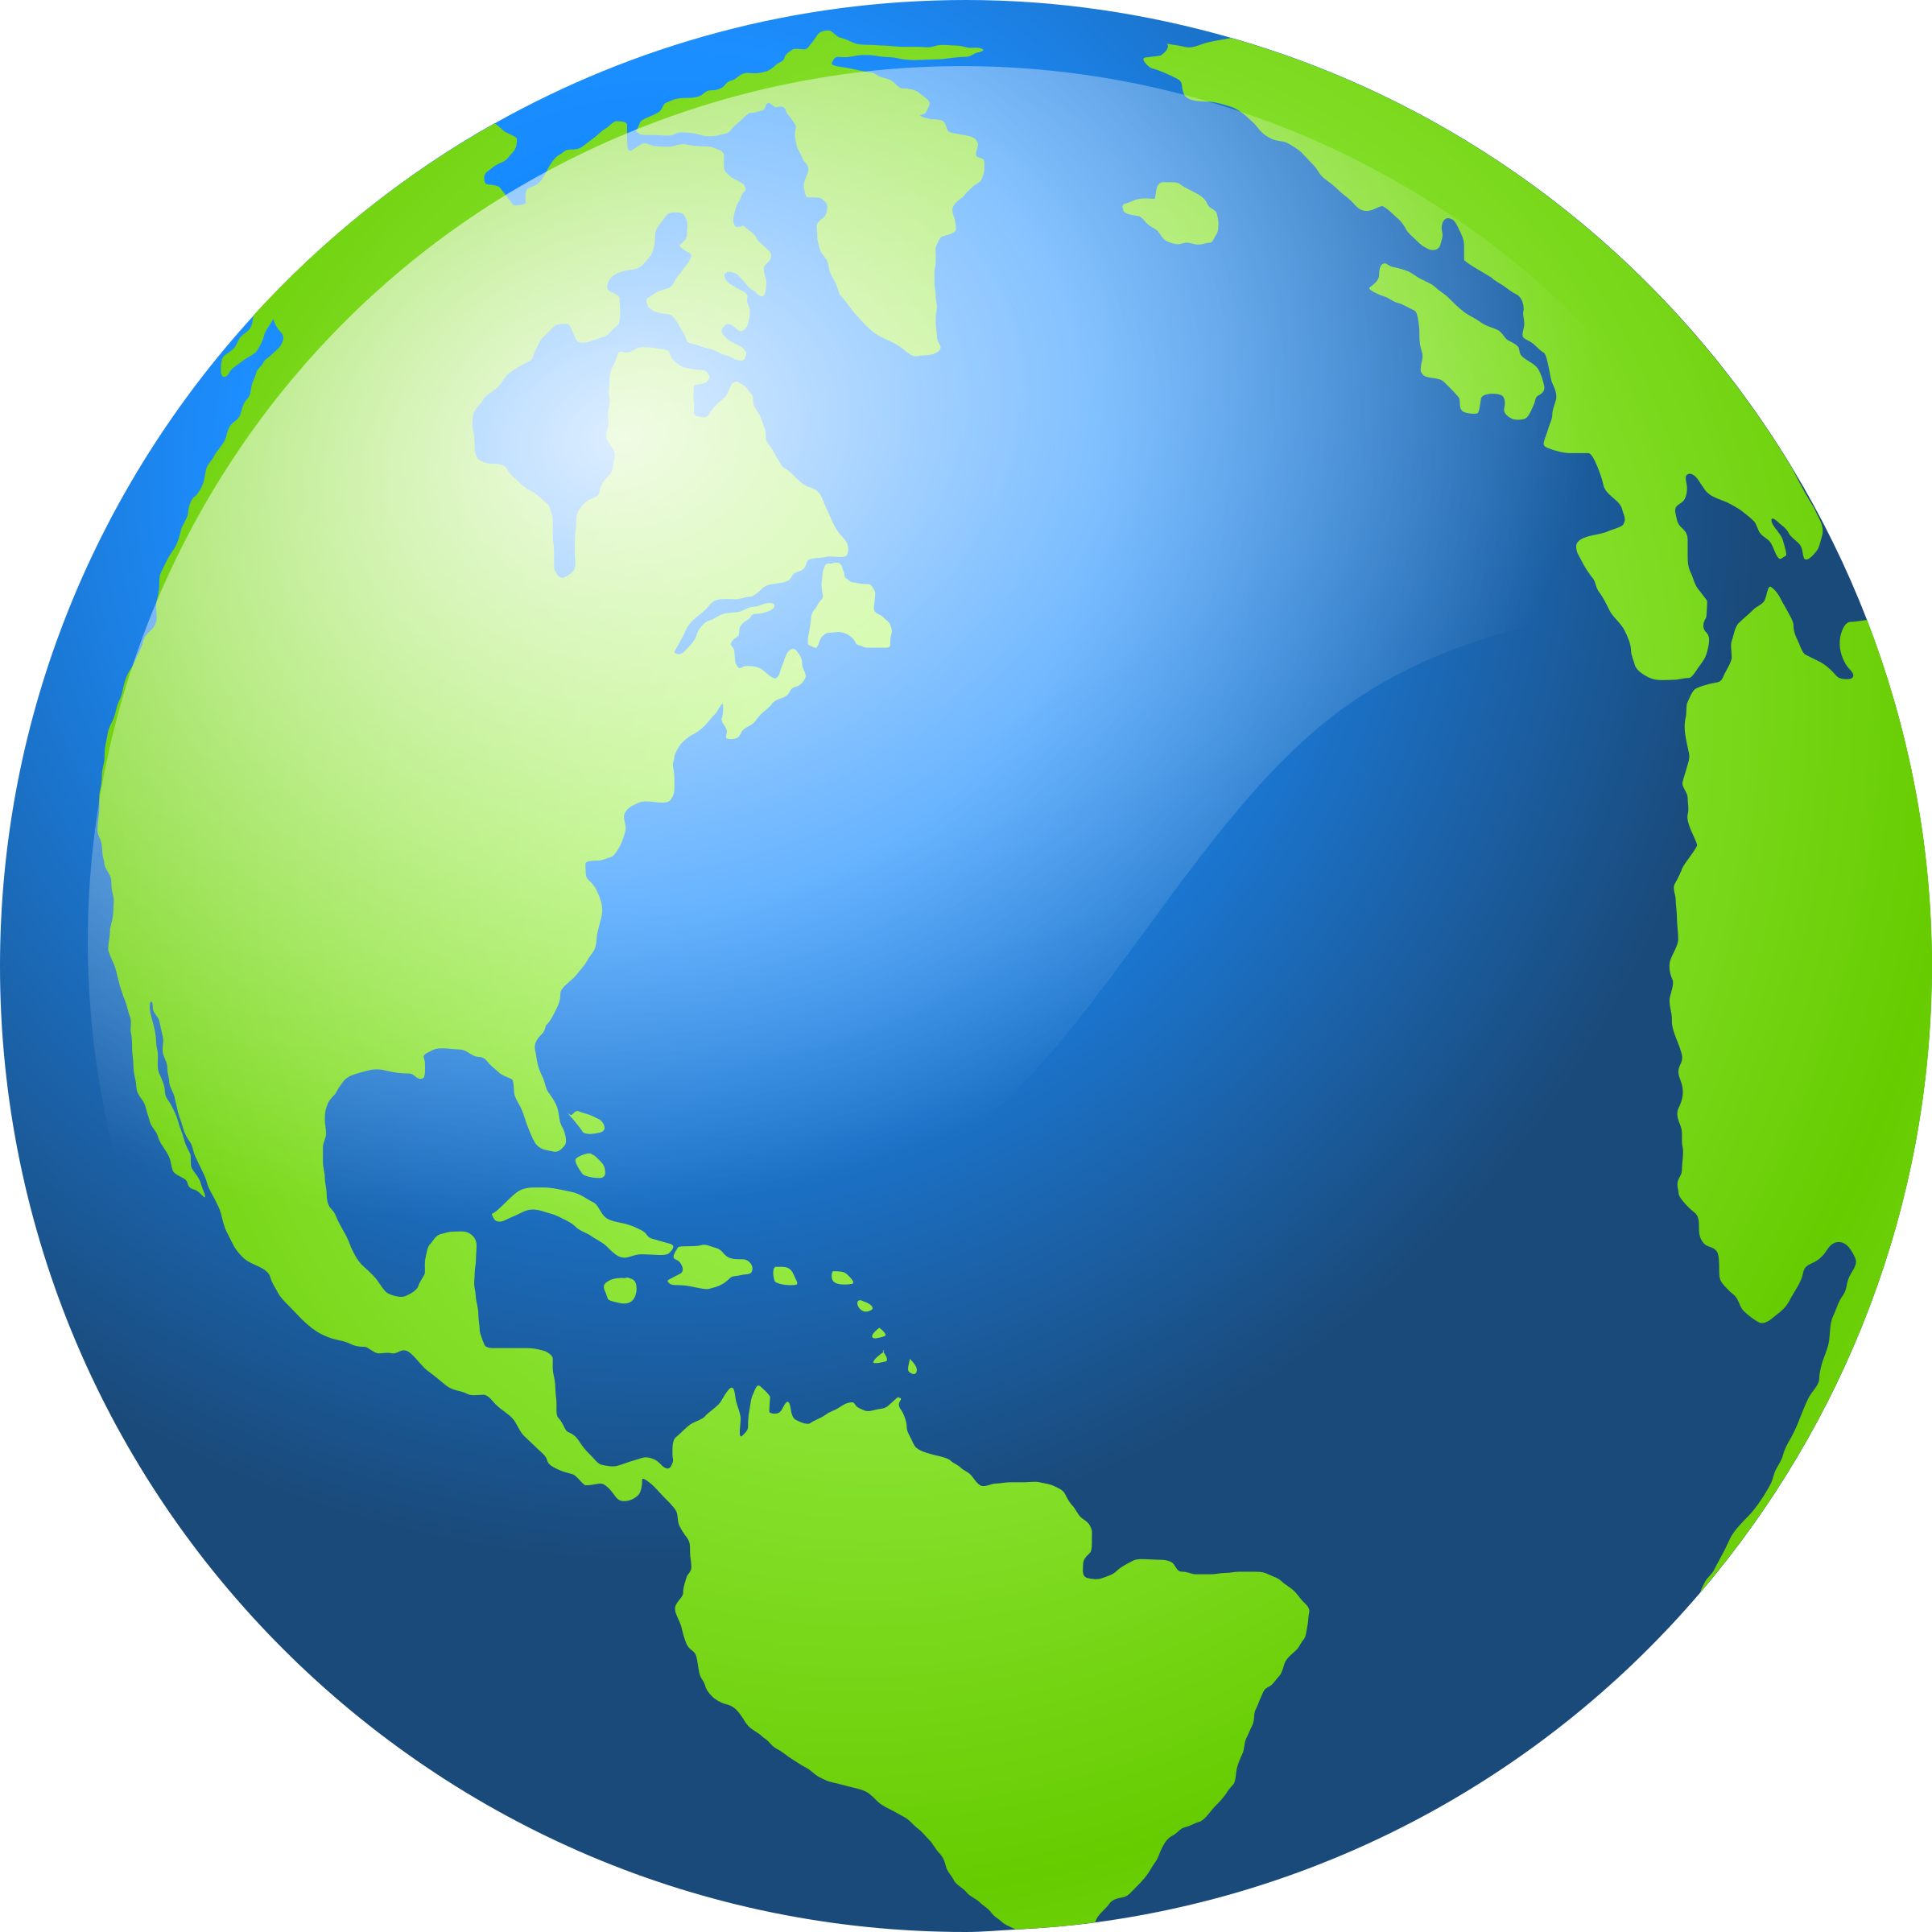 Earth big image png. Planet clipart transparent background